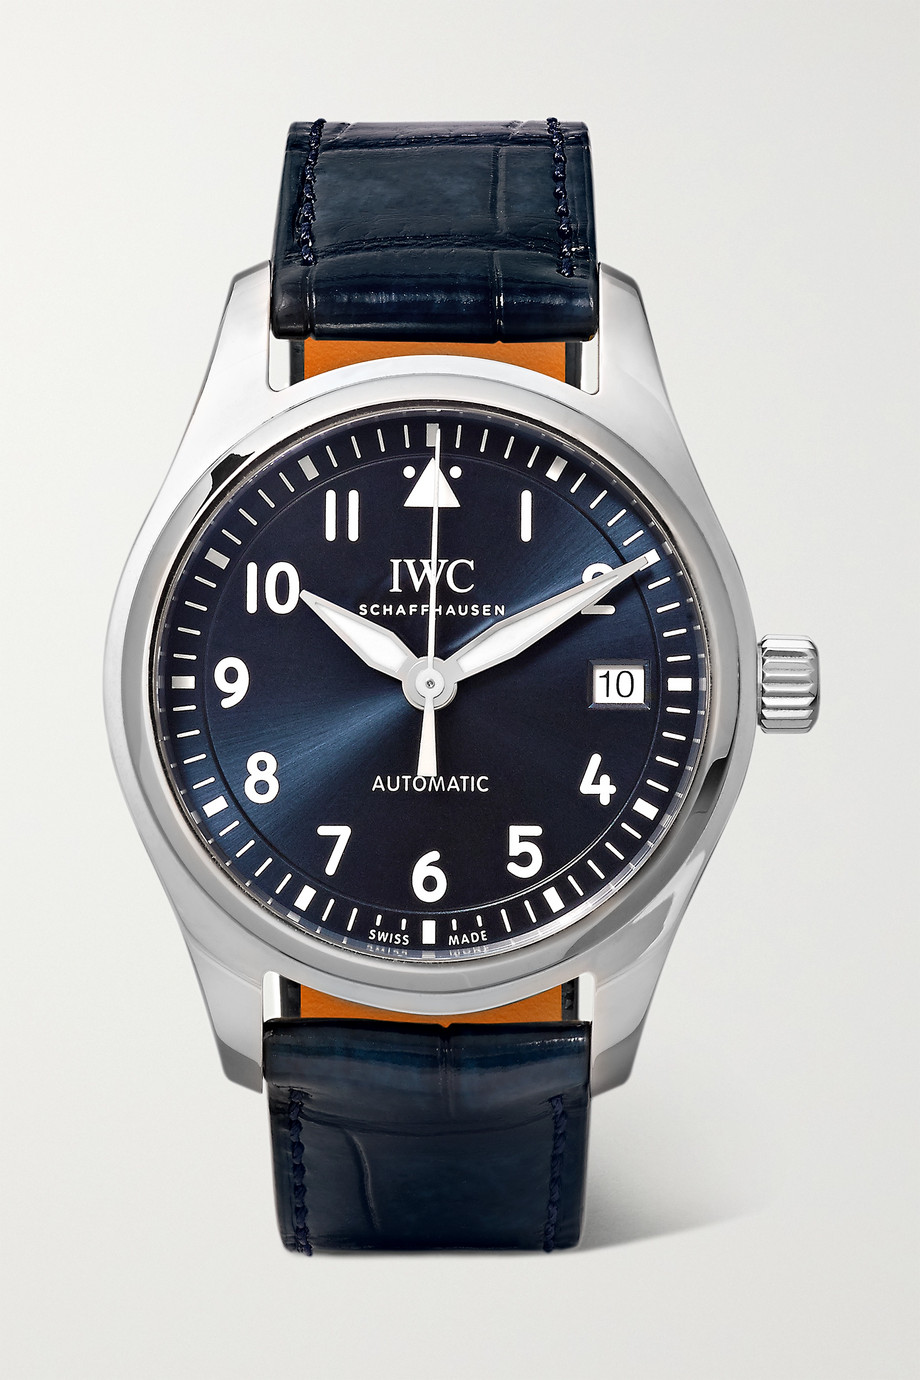 IWC SCHAFFHAUSEN Montre d'aviateur en acier inoxydable à bracelet en alligator Automatic 36 mm